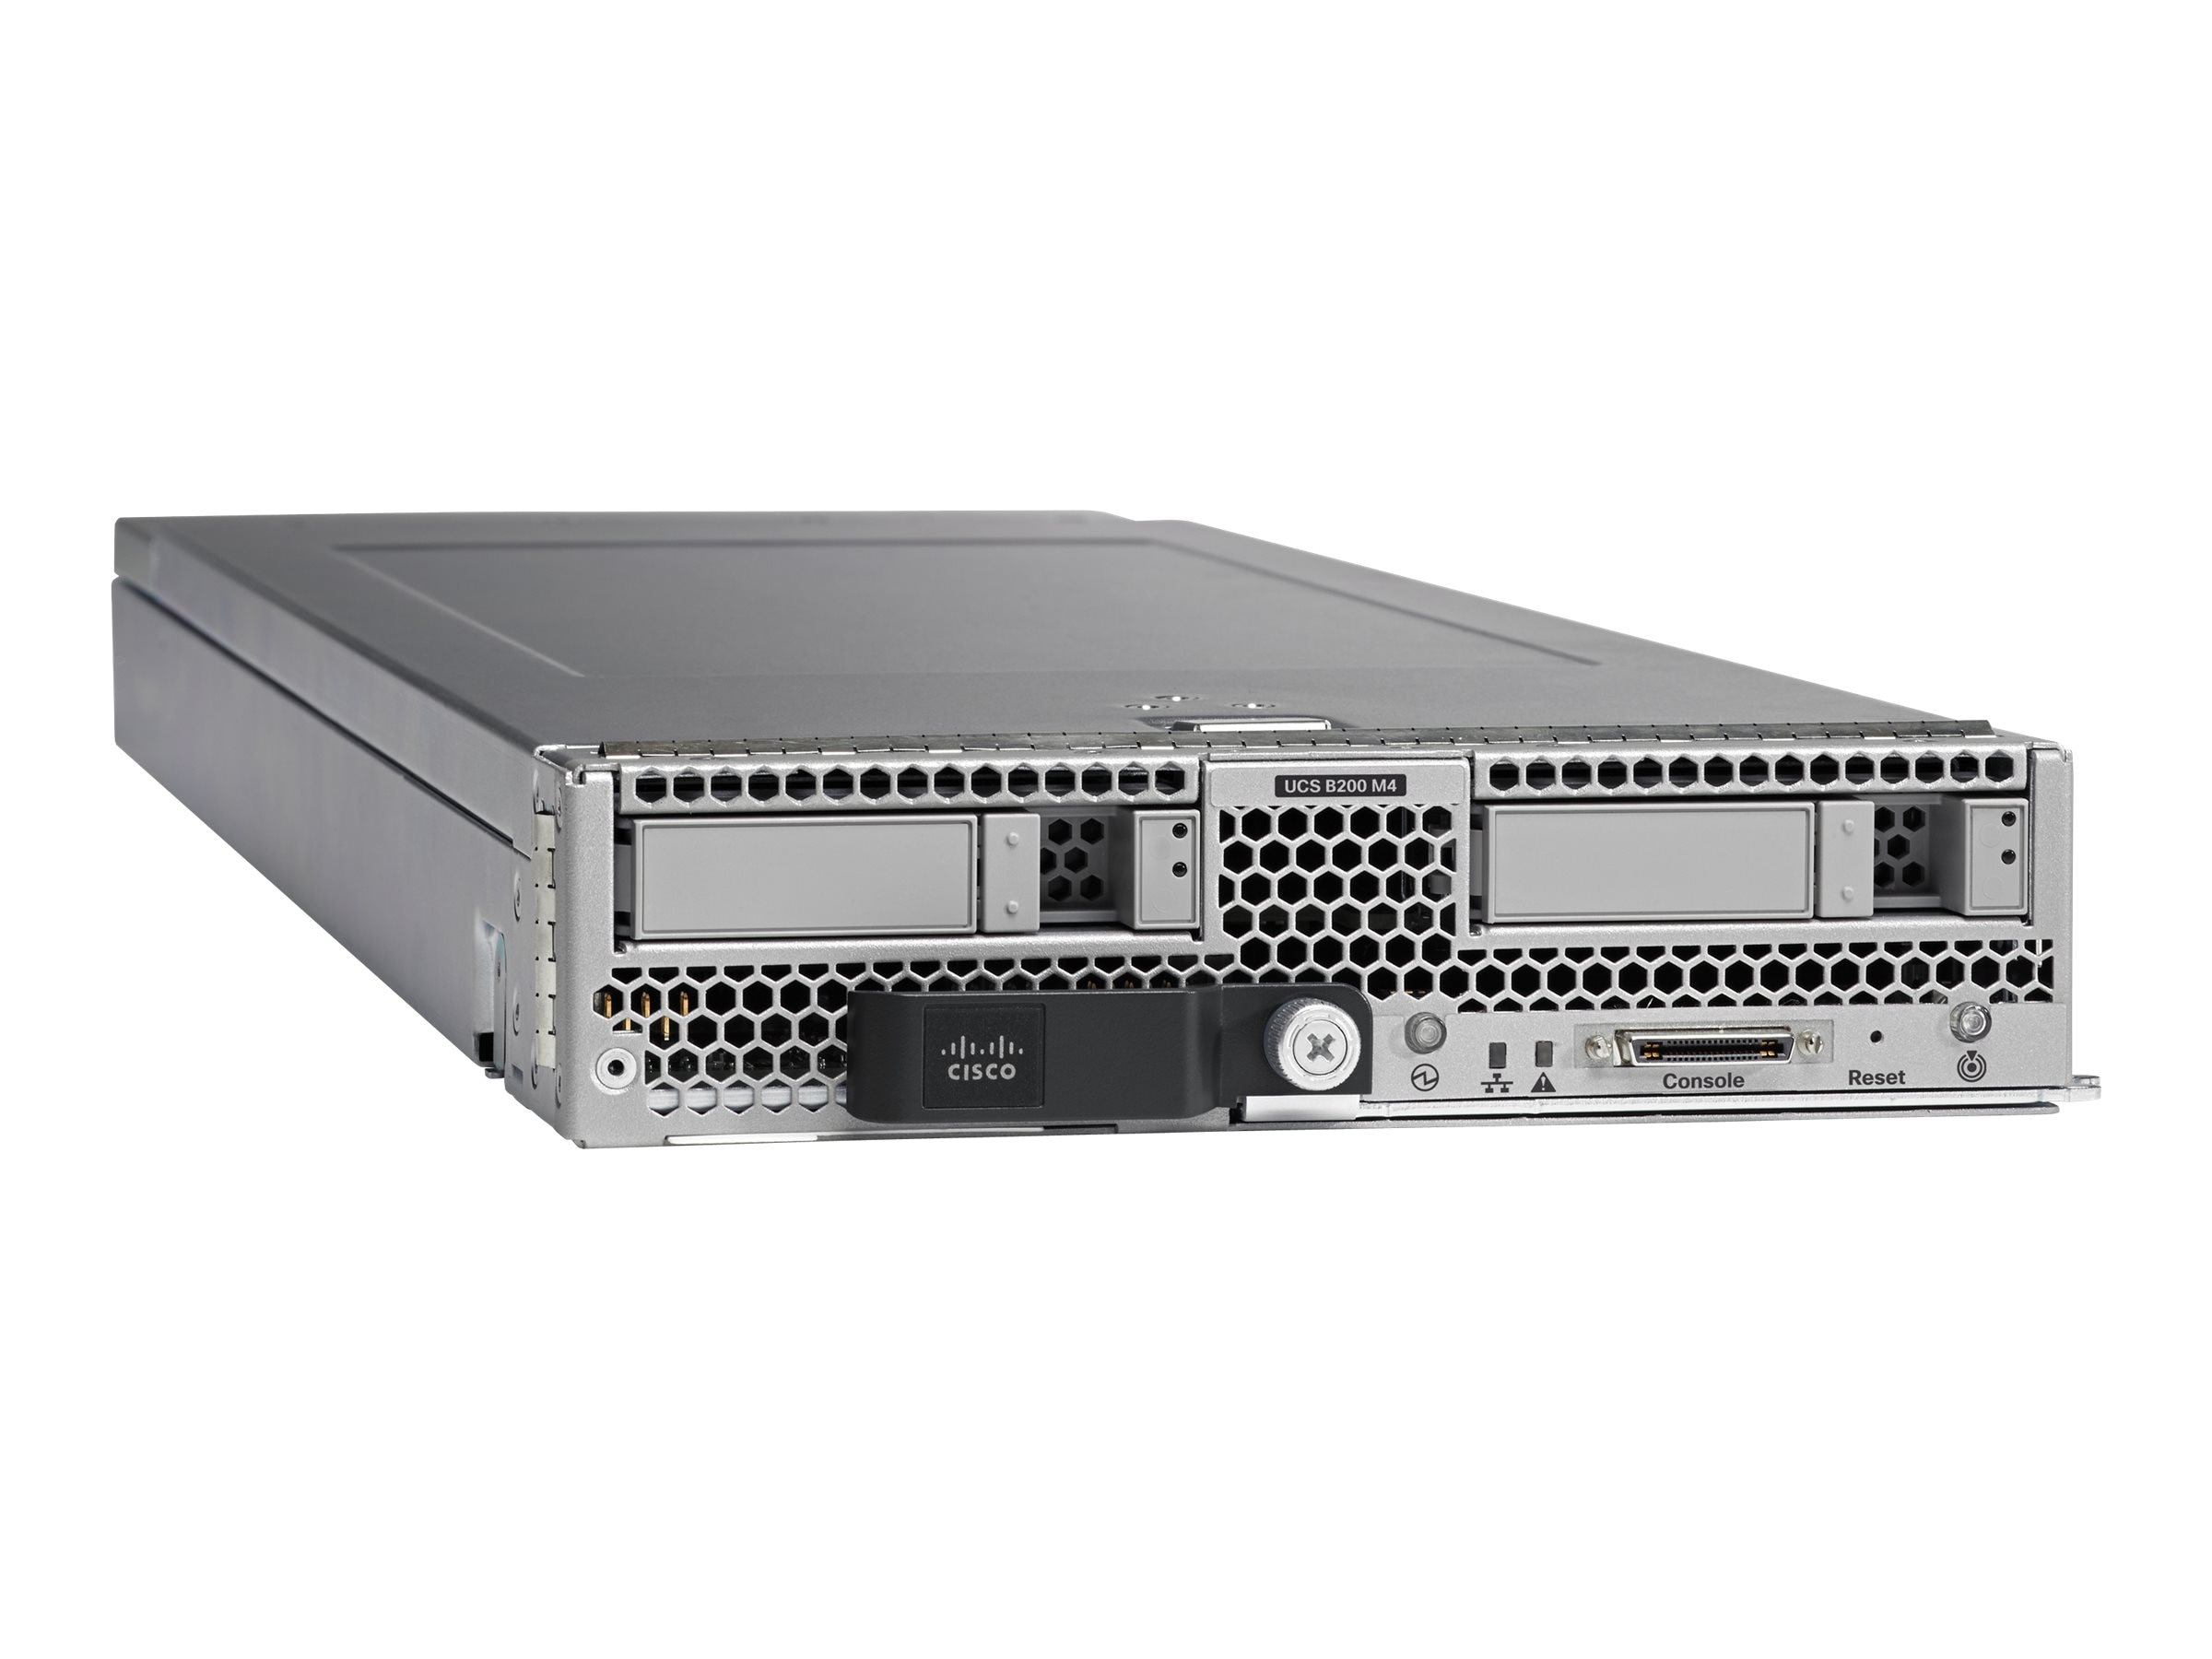 Cisco UCS-SP-B200M4-B-A4 Image 3